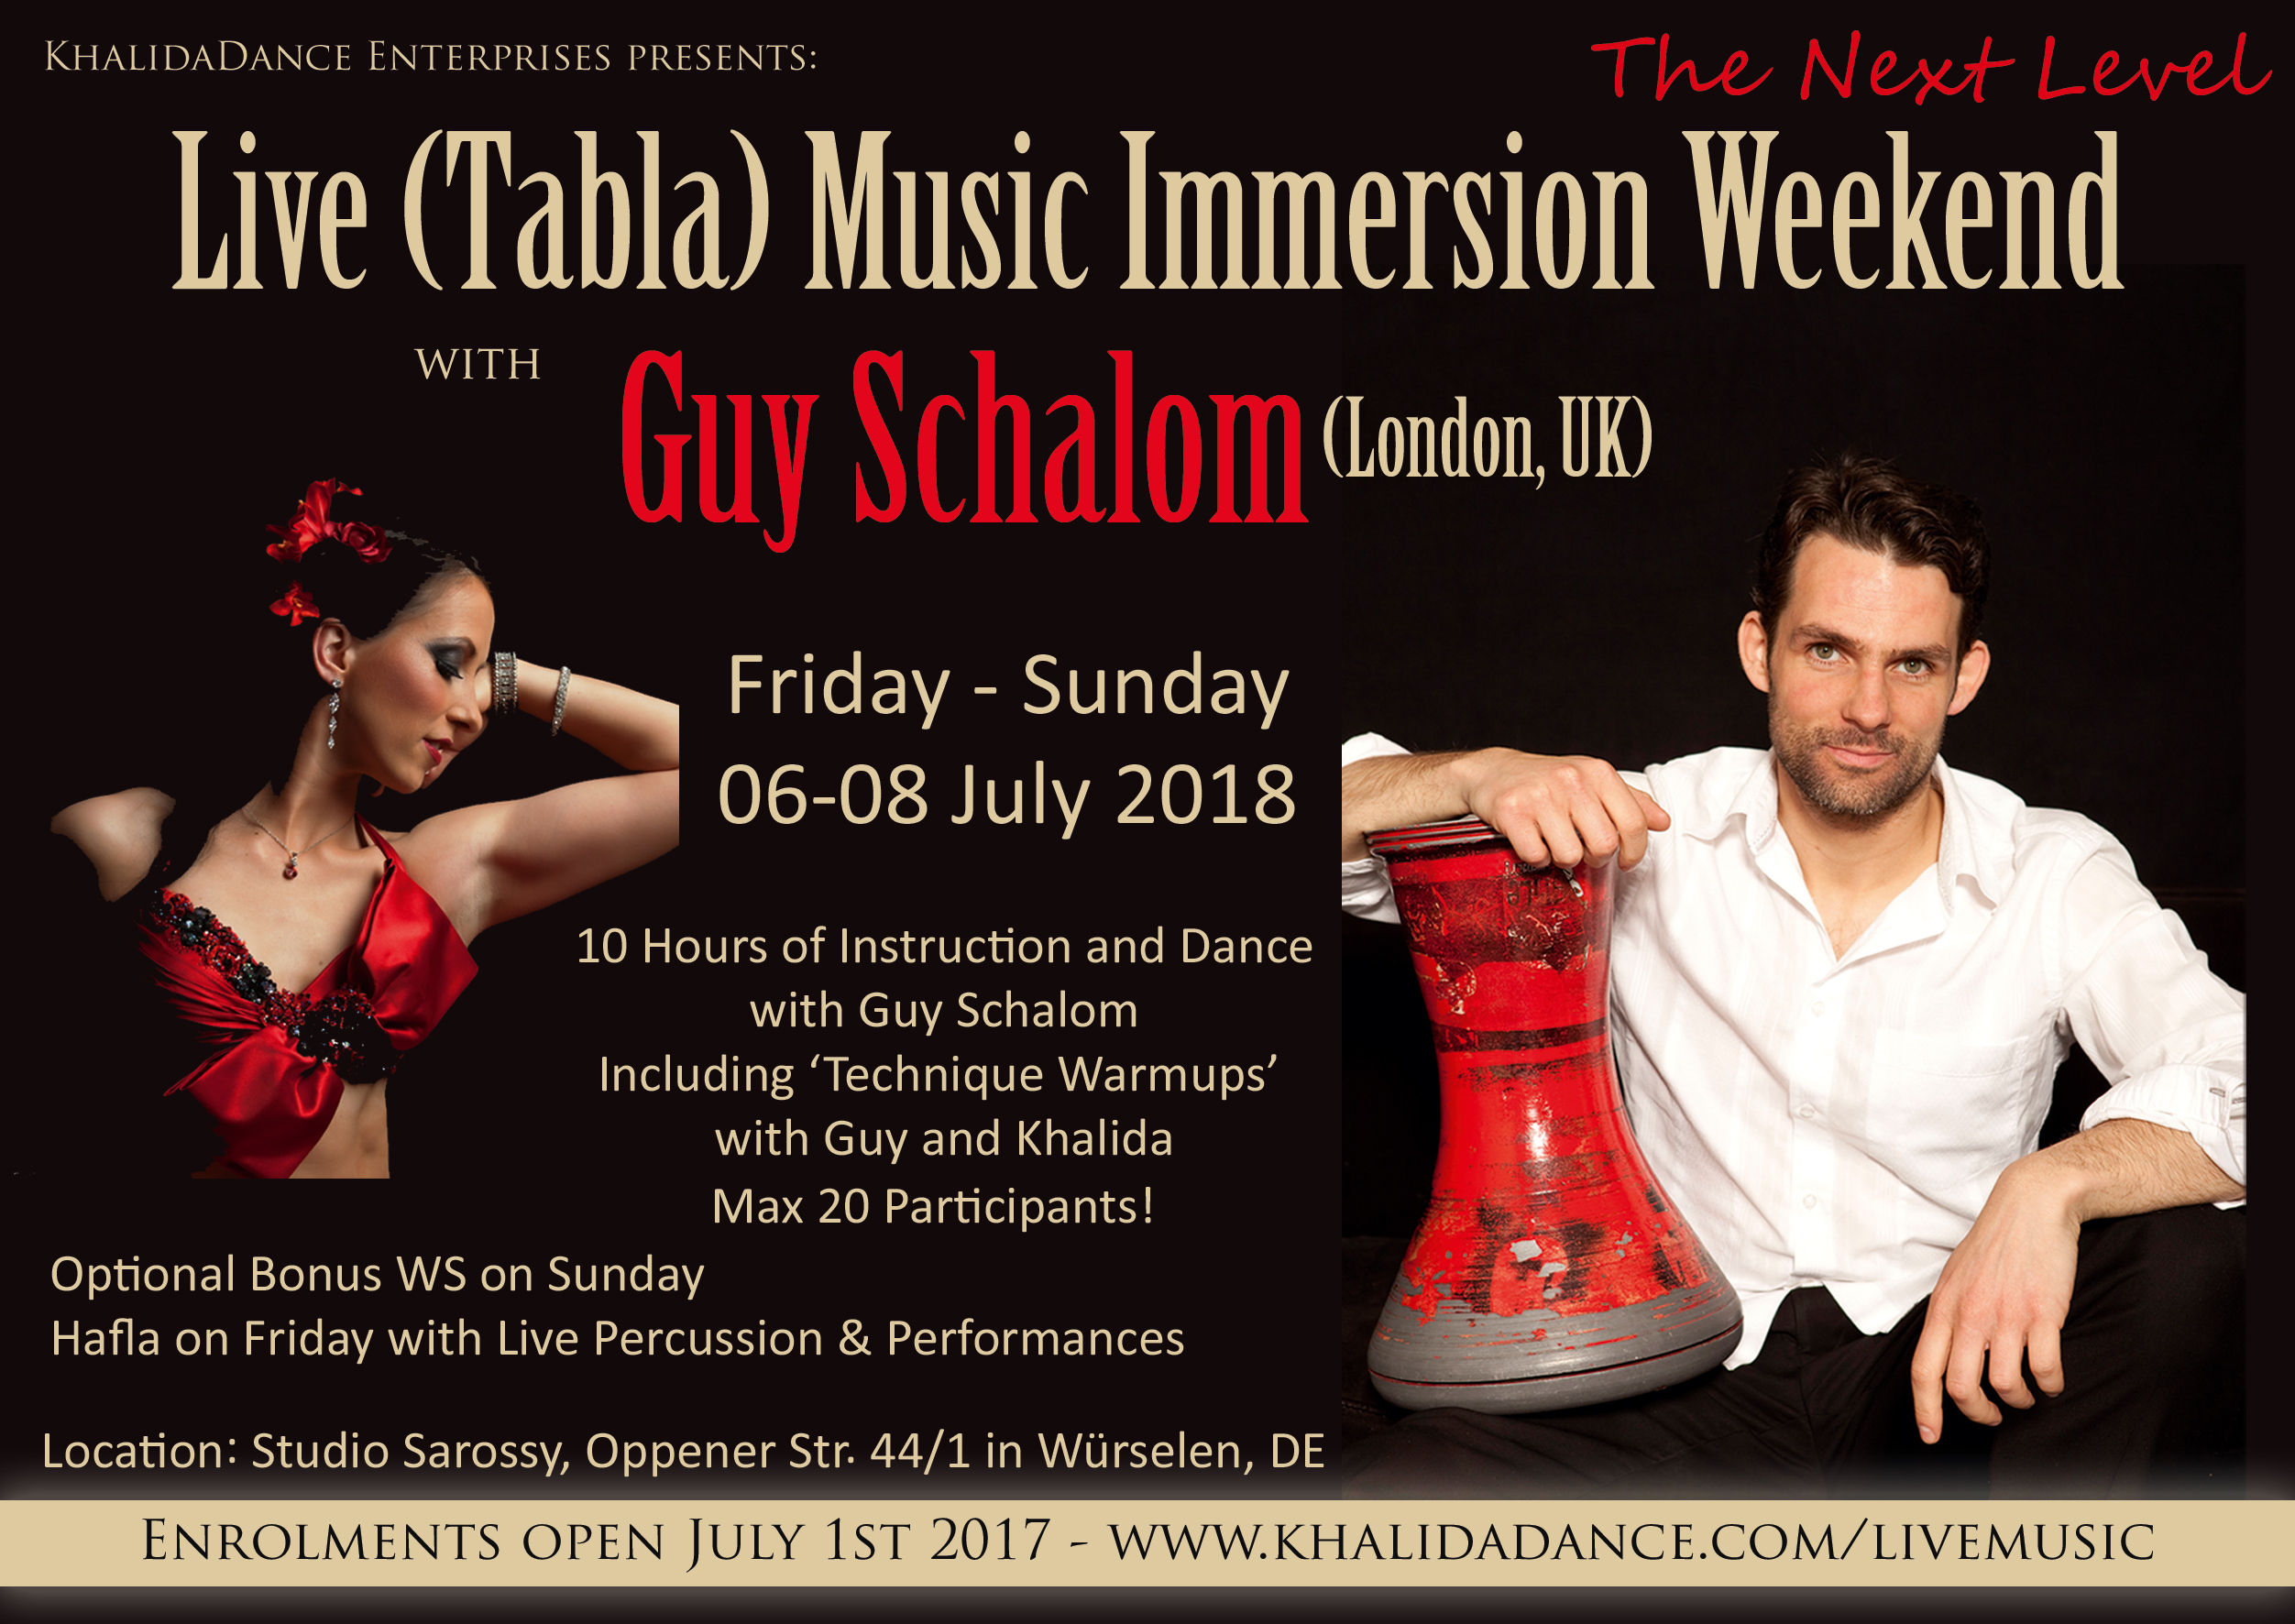 Live (Tabla) Music Immersion Weekend with Guy Schalom